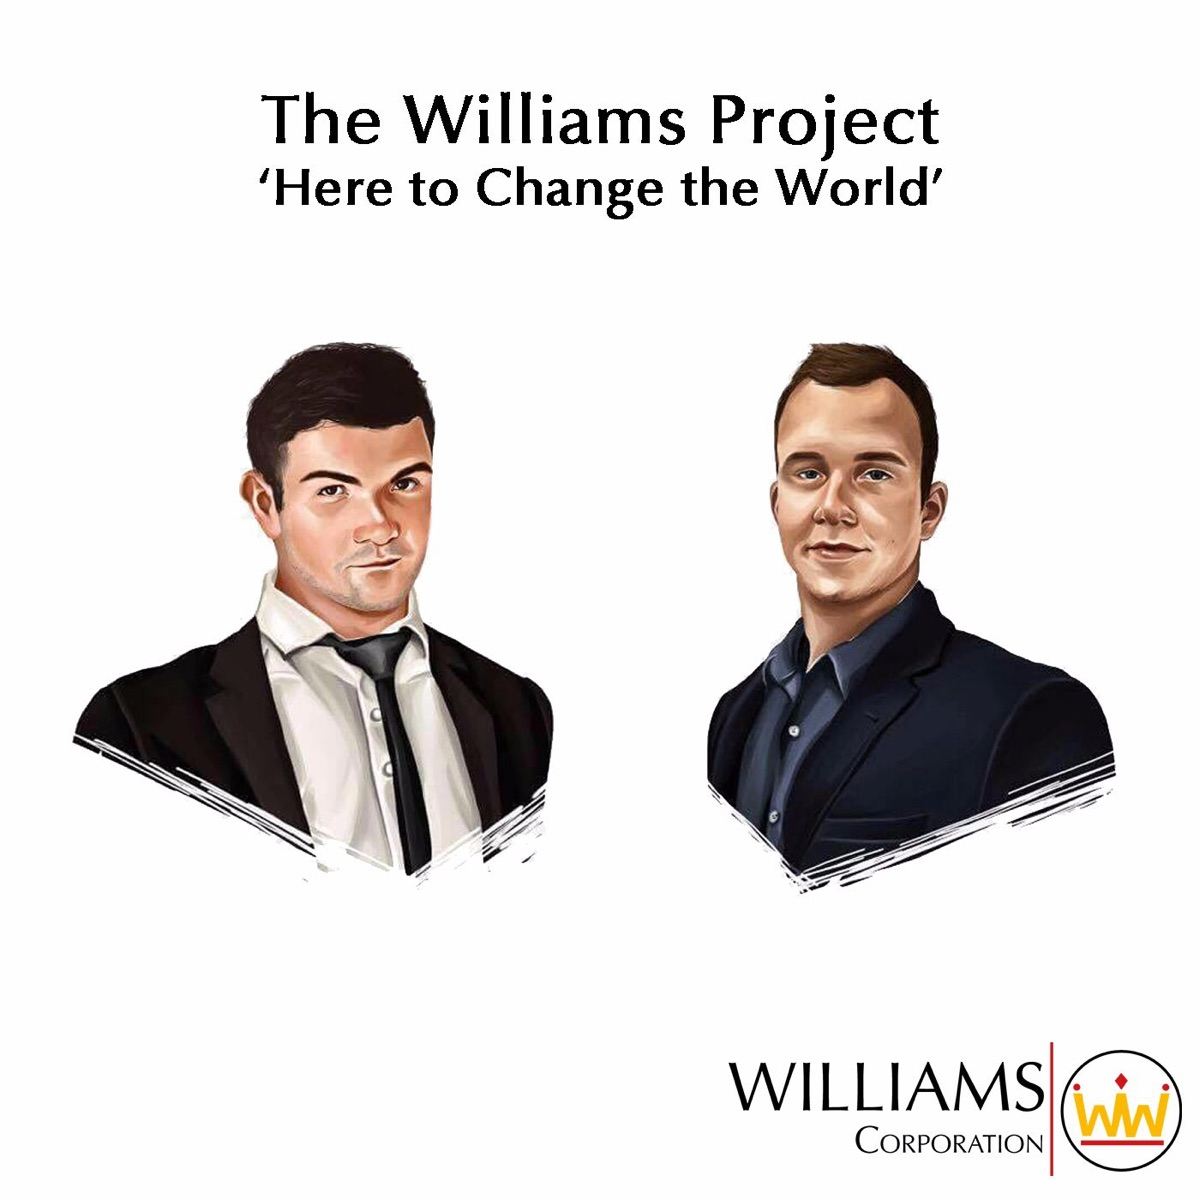 The Williams Project